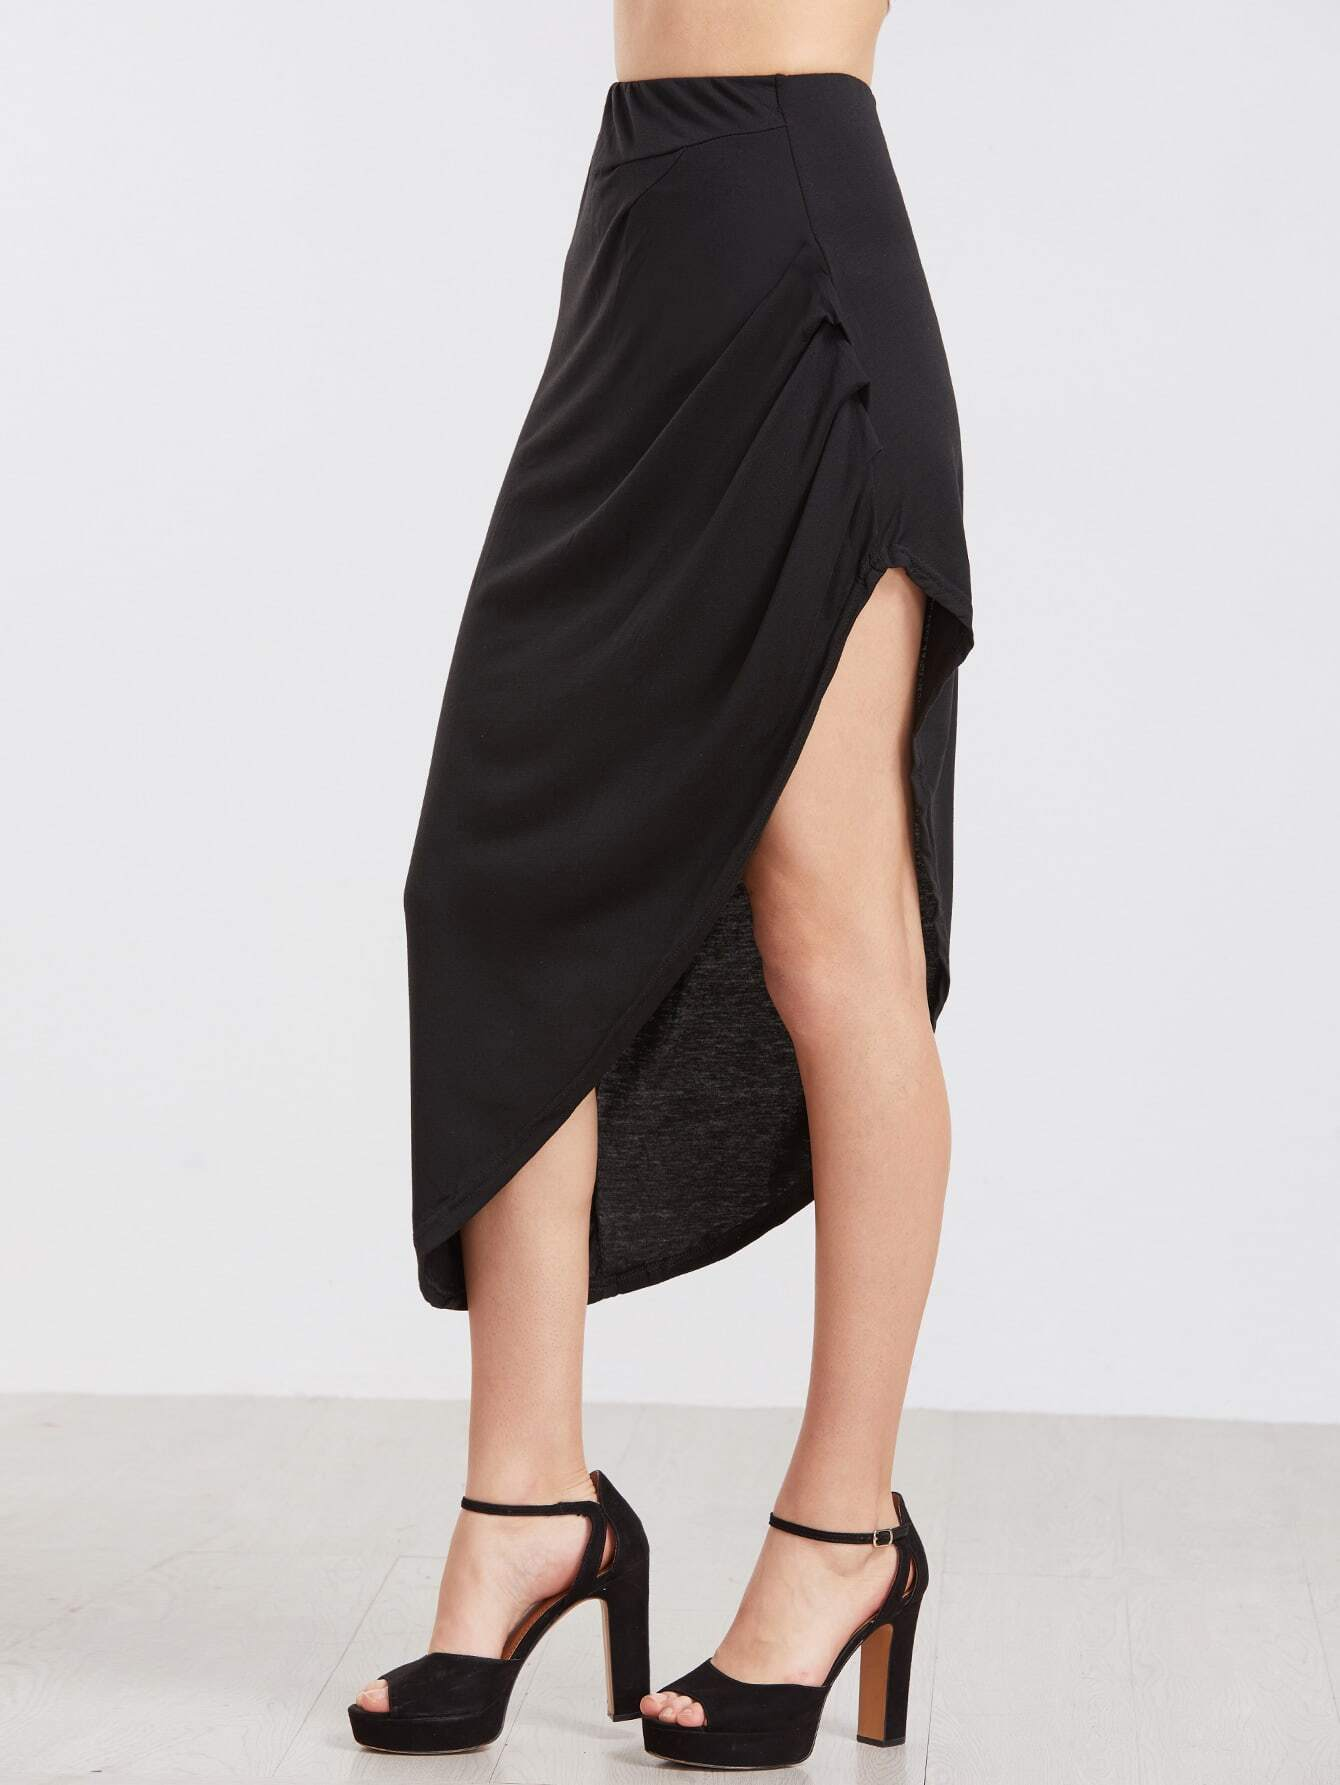 Black Ruched Asymmetrical Skirt